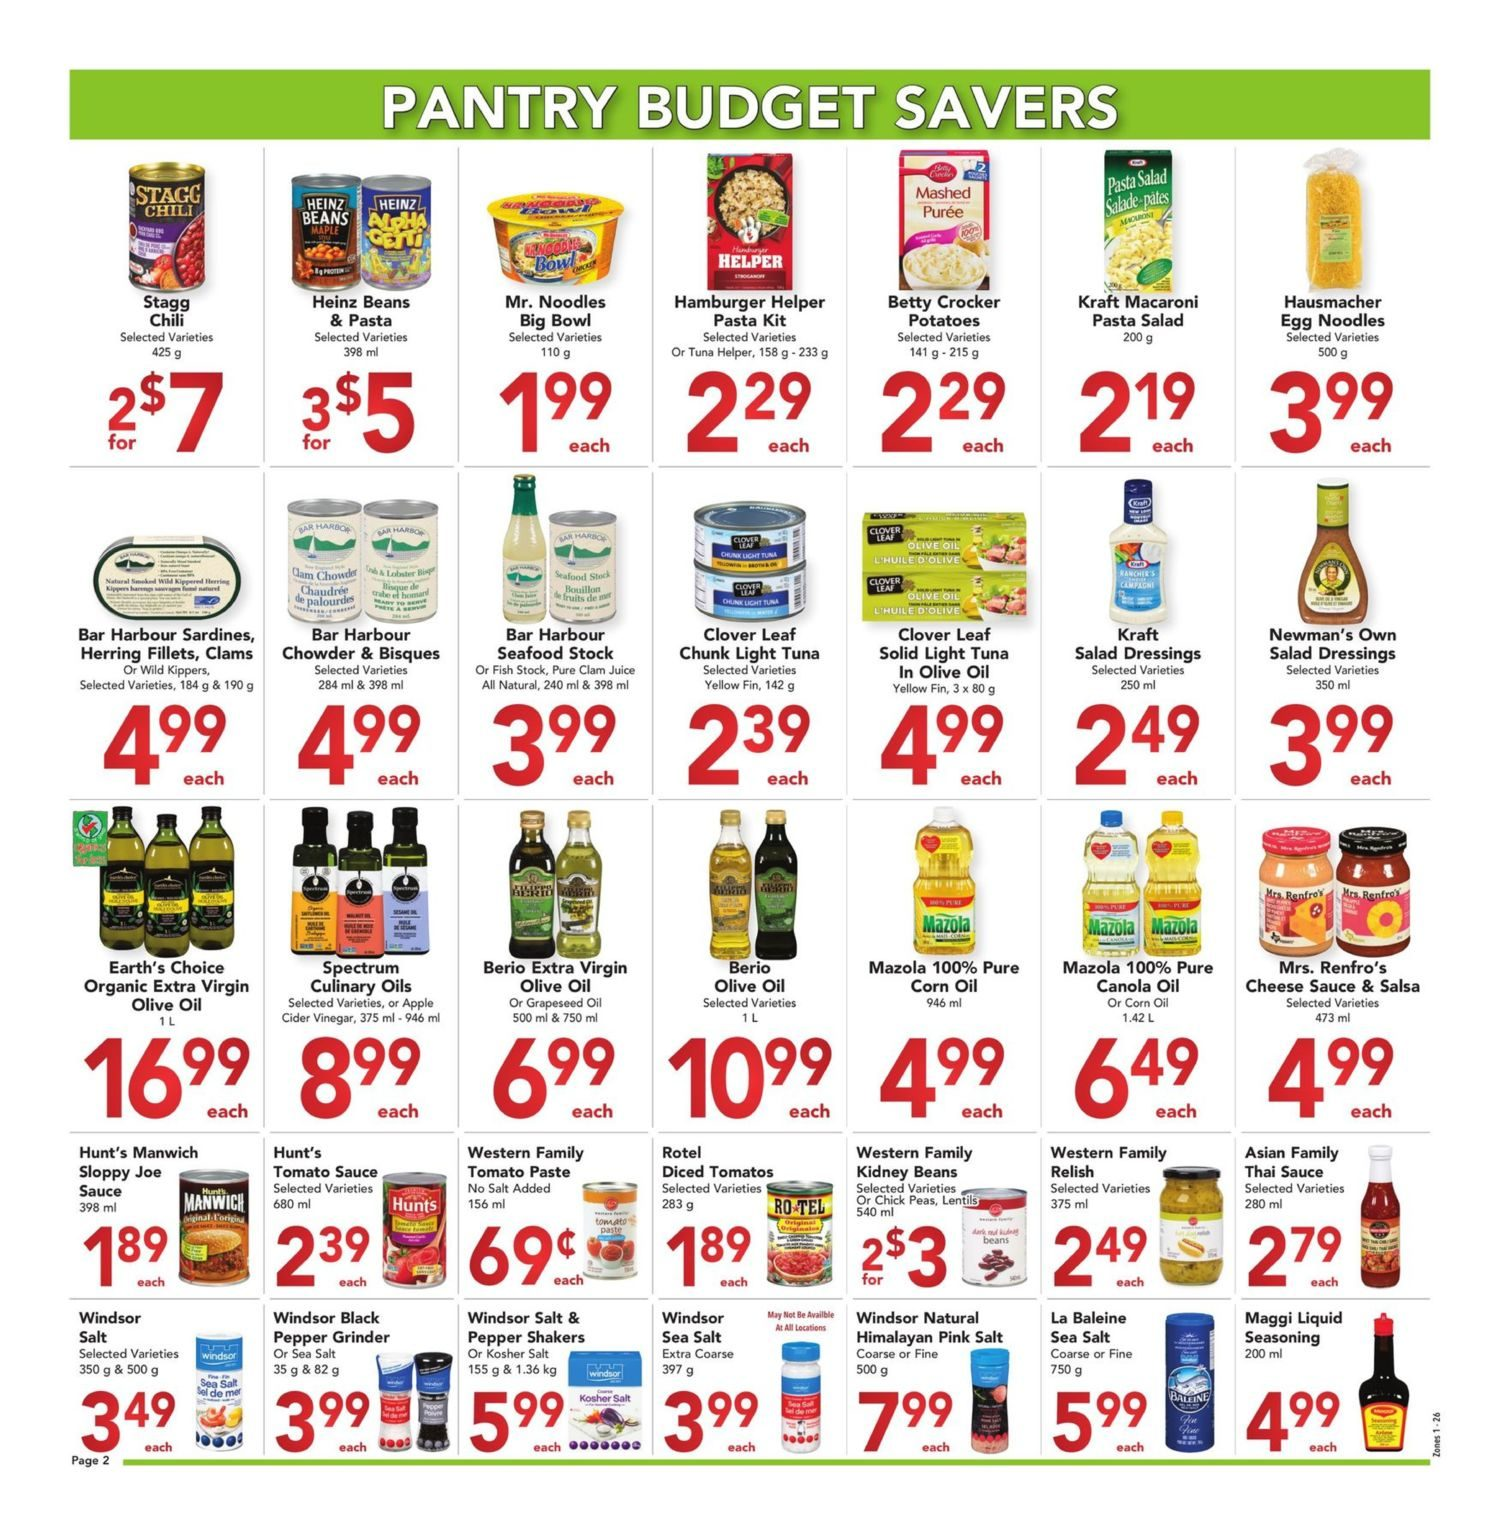 Buy-Low Foods - Budget Savers - Page 2